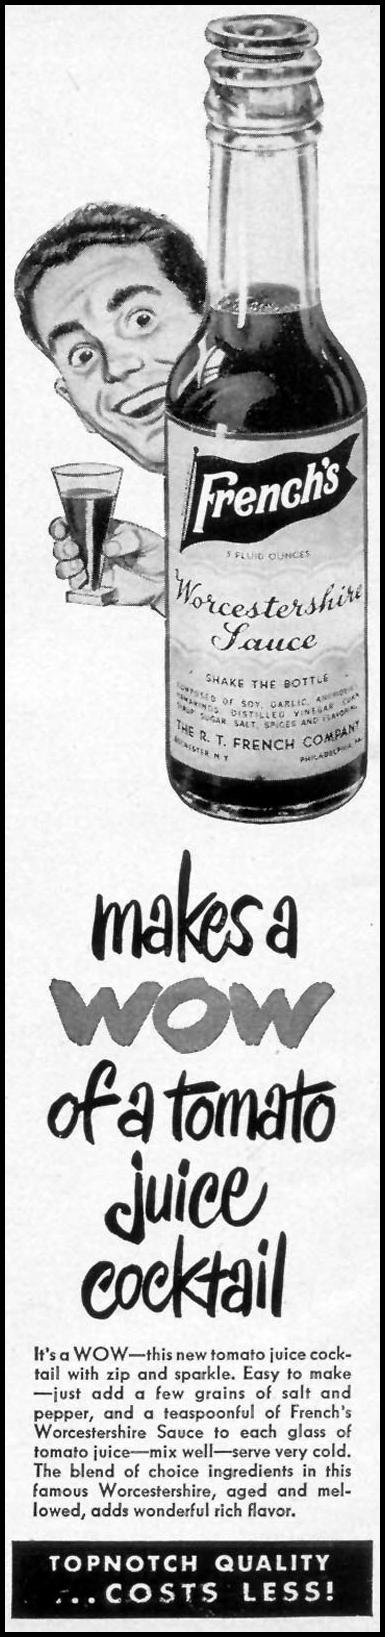 FRENCH'S WORCESTERSHIRE SAUCE WOMAN'S DAY 05/01/1946 p. 24